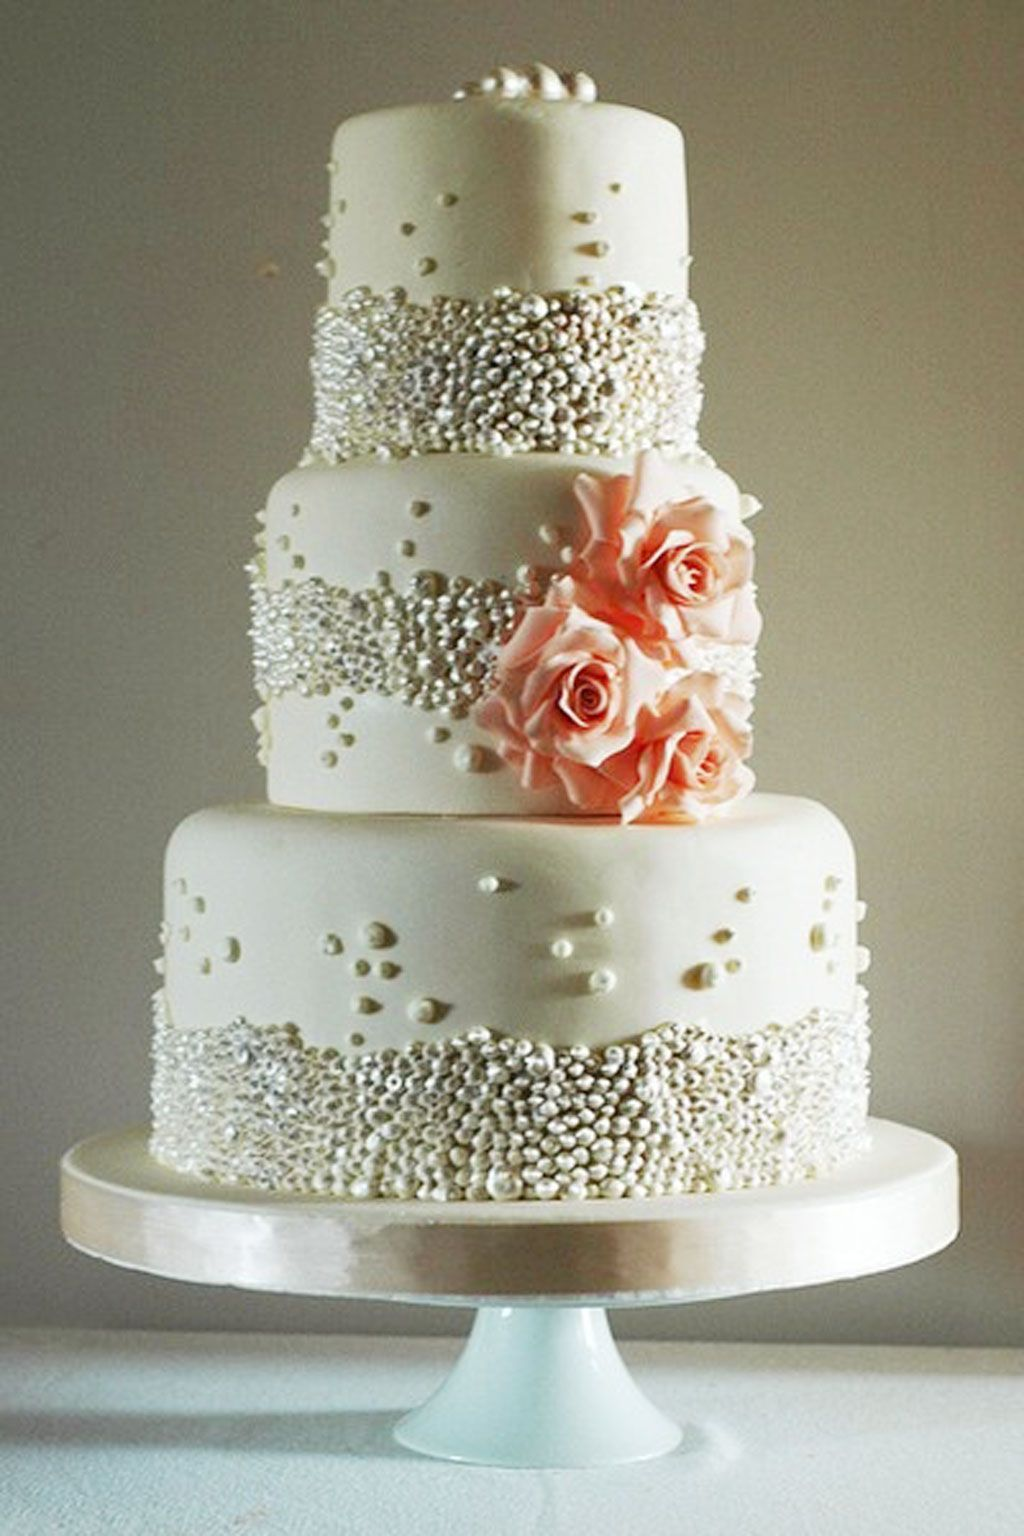 30 ultimate wedding cakes to steal the show wedding cake cake and 30 ultimate wedding cakes to steal the show godfather style junglespirit Images